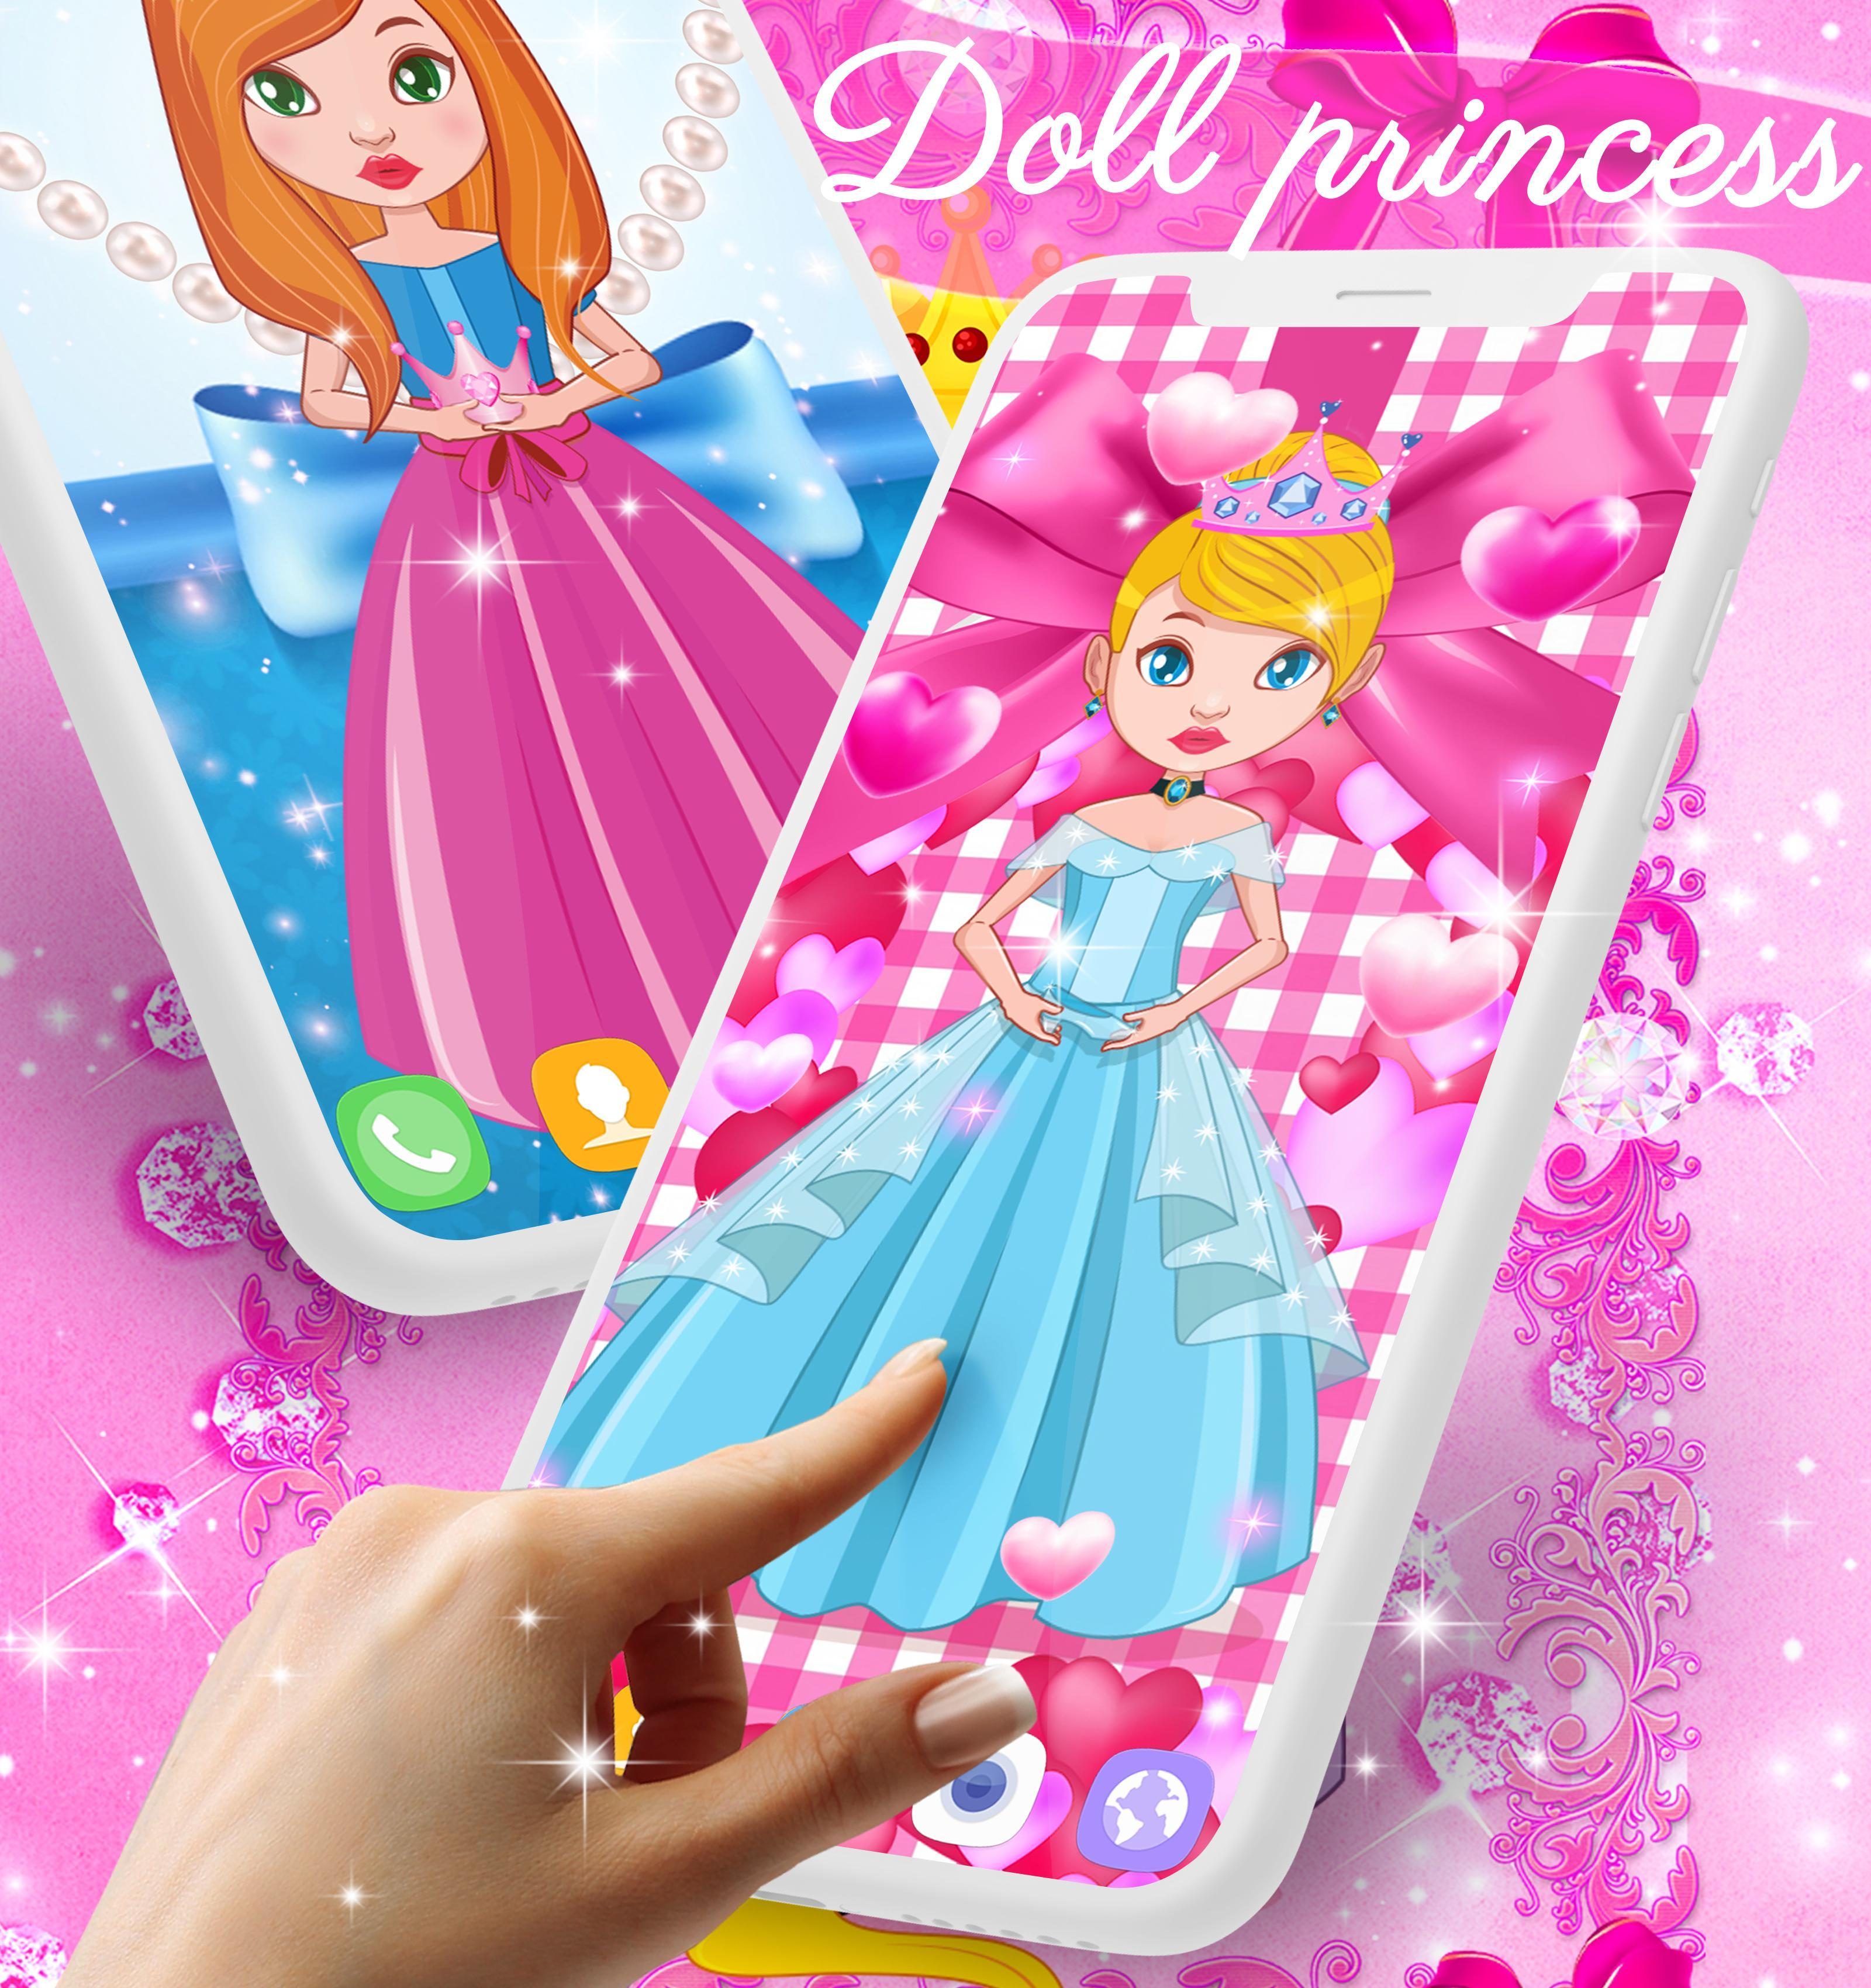 Doll Princess Live Wallpaper For Android Apk Download